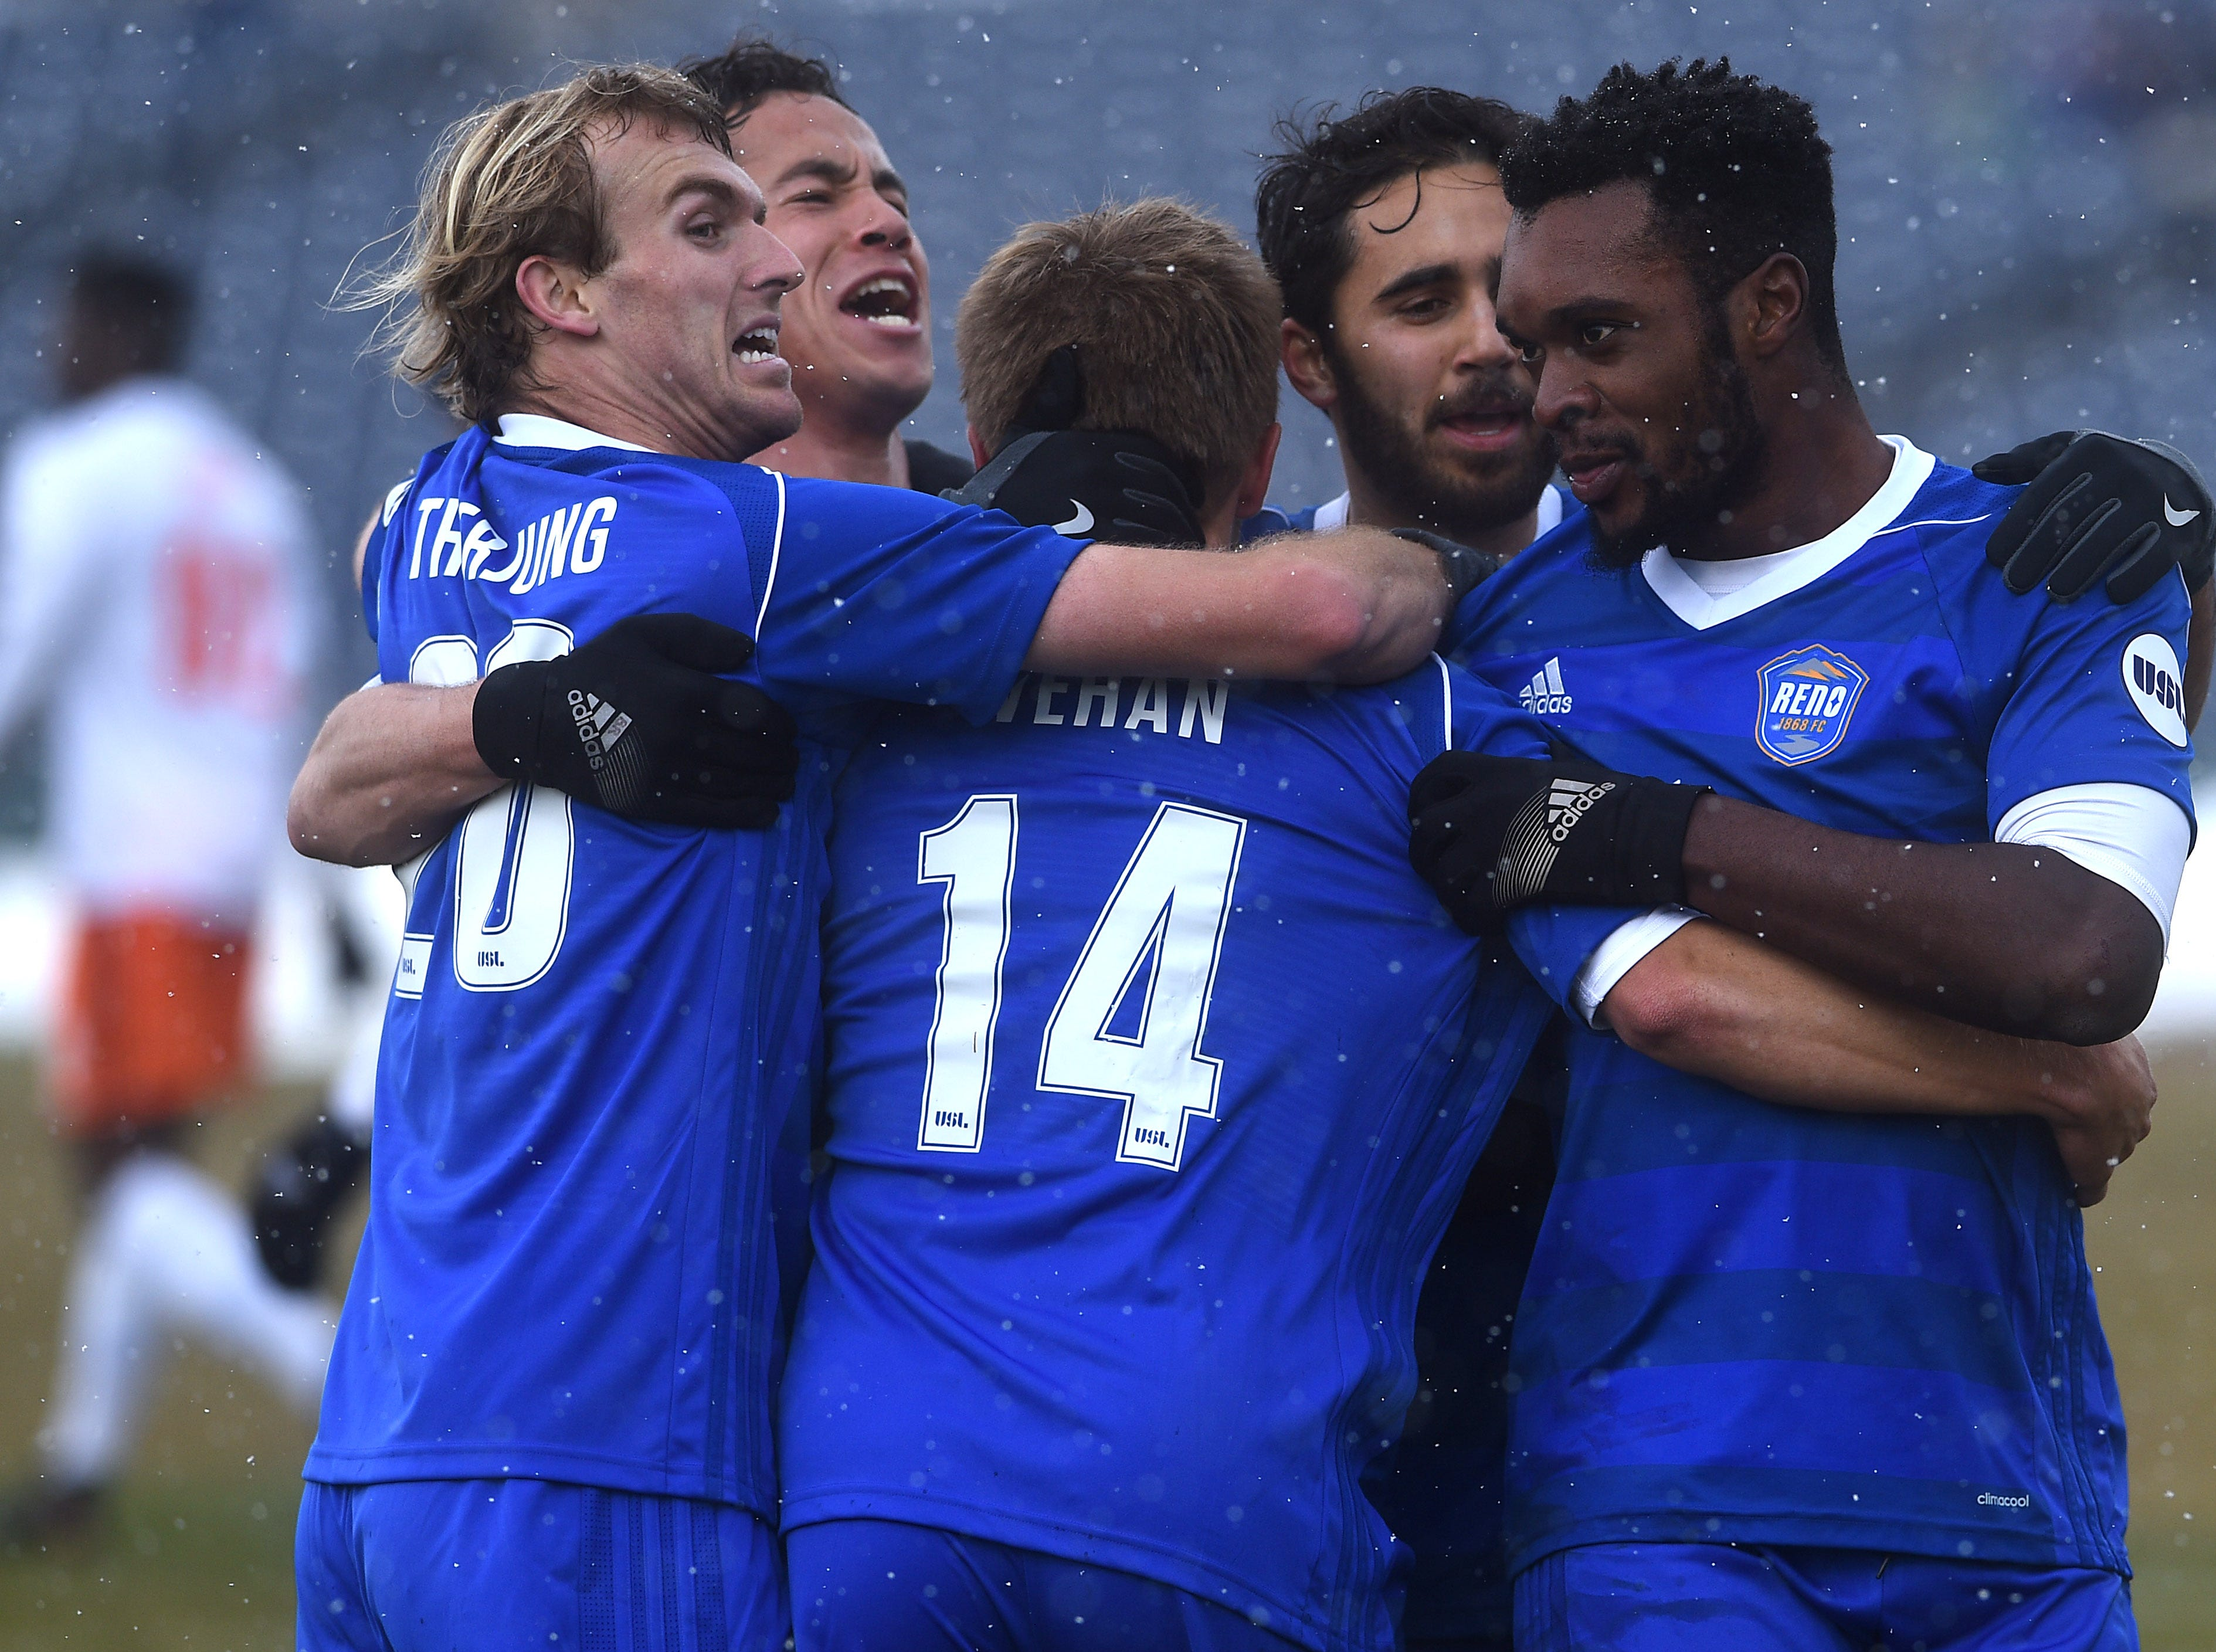 Reno 1868 FC's Chris Wehan (14) gets mobbed by his teammates after scoring against the Swope Park Rangers at Greater Nevada Field in Reno on March 17, 2018. Wehan scored the only goal of the first half.